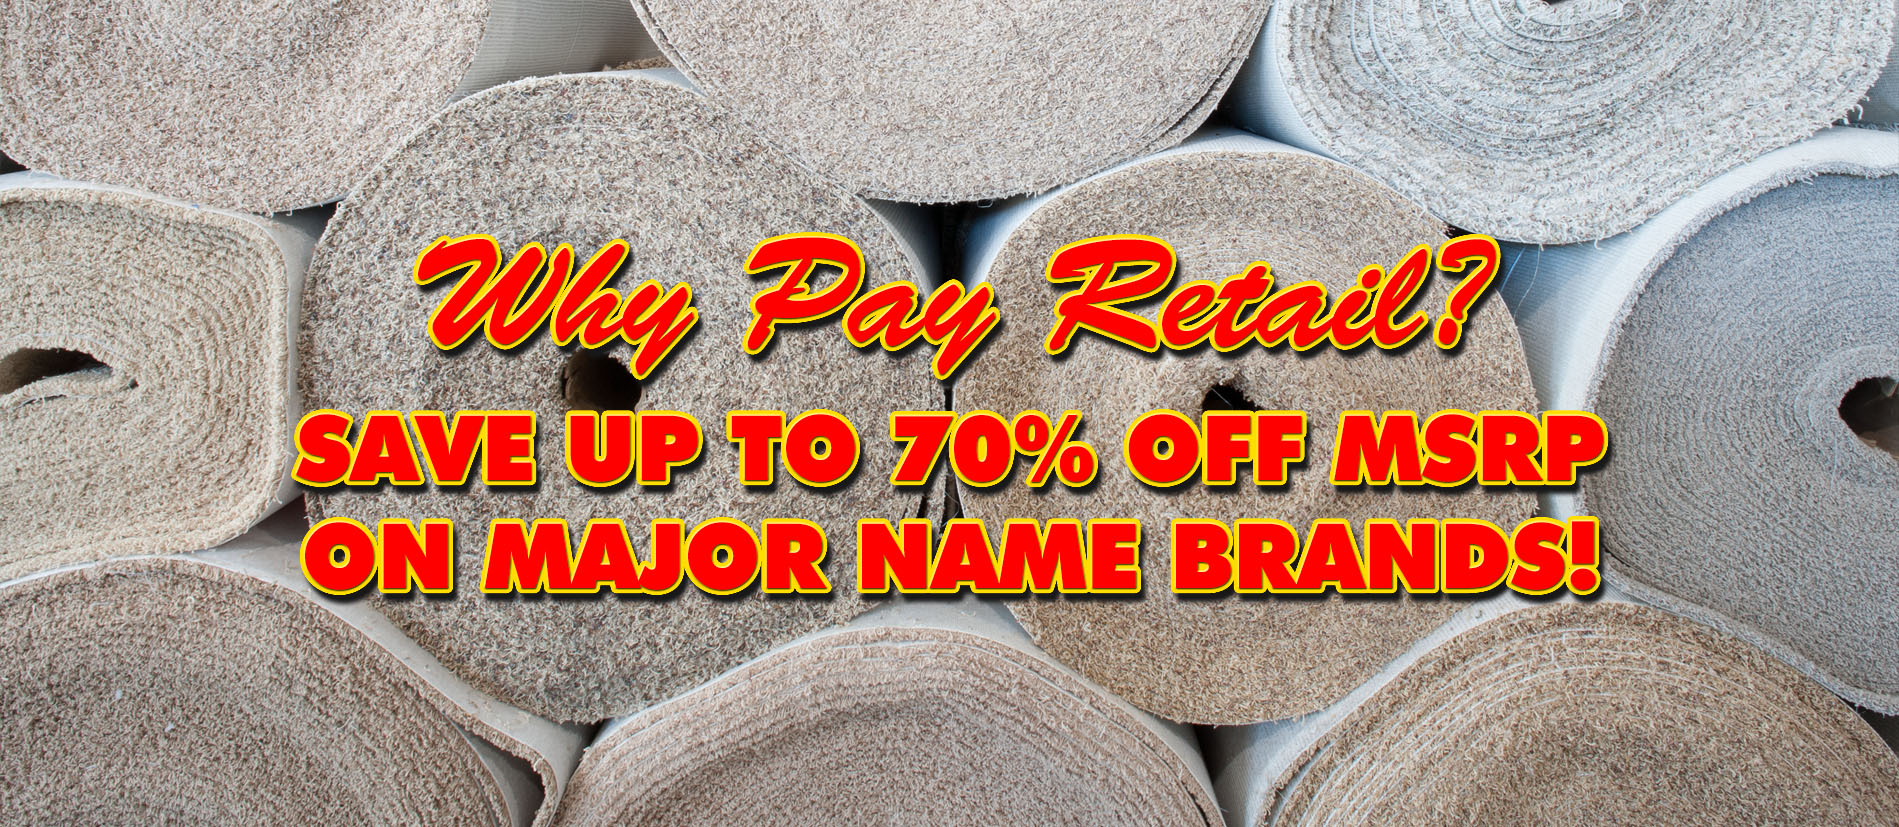 Why Pay Retail? Save Up To 70% Off MSRP On Major Name Brands!